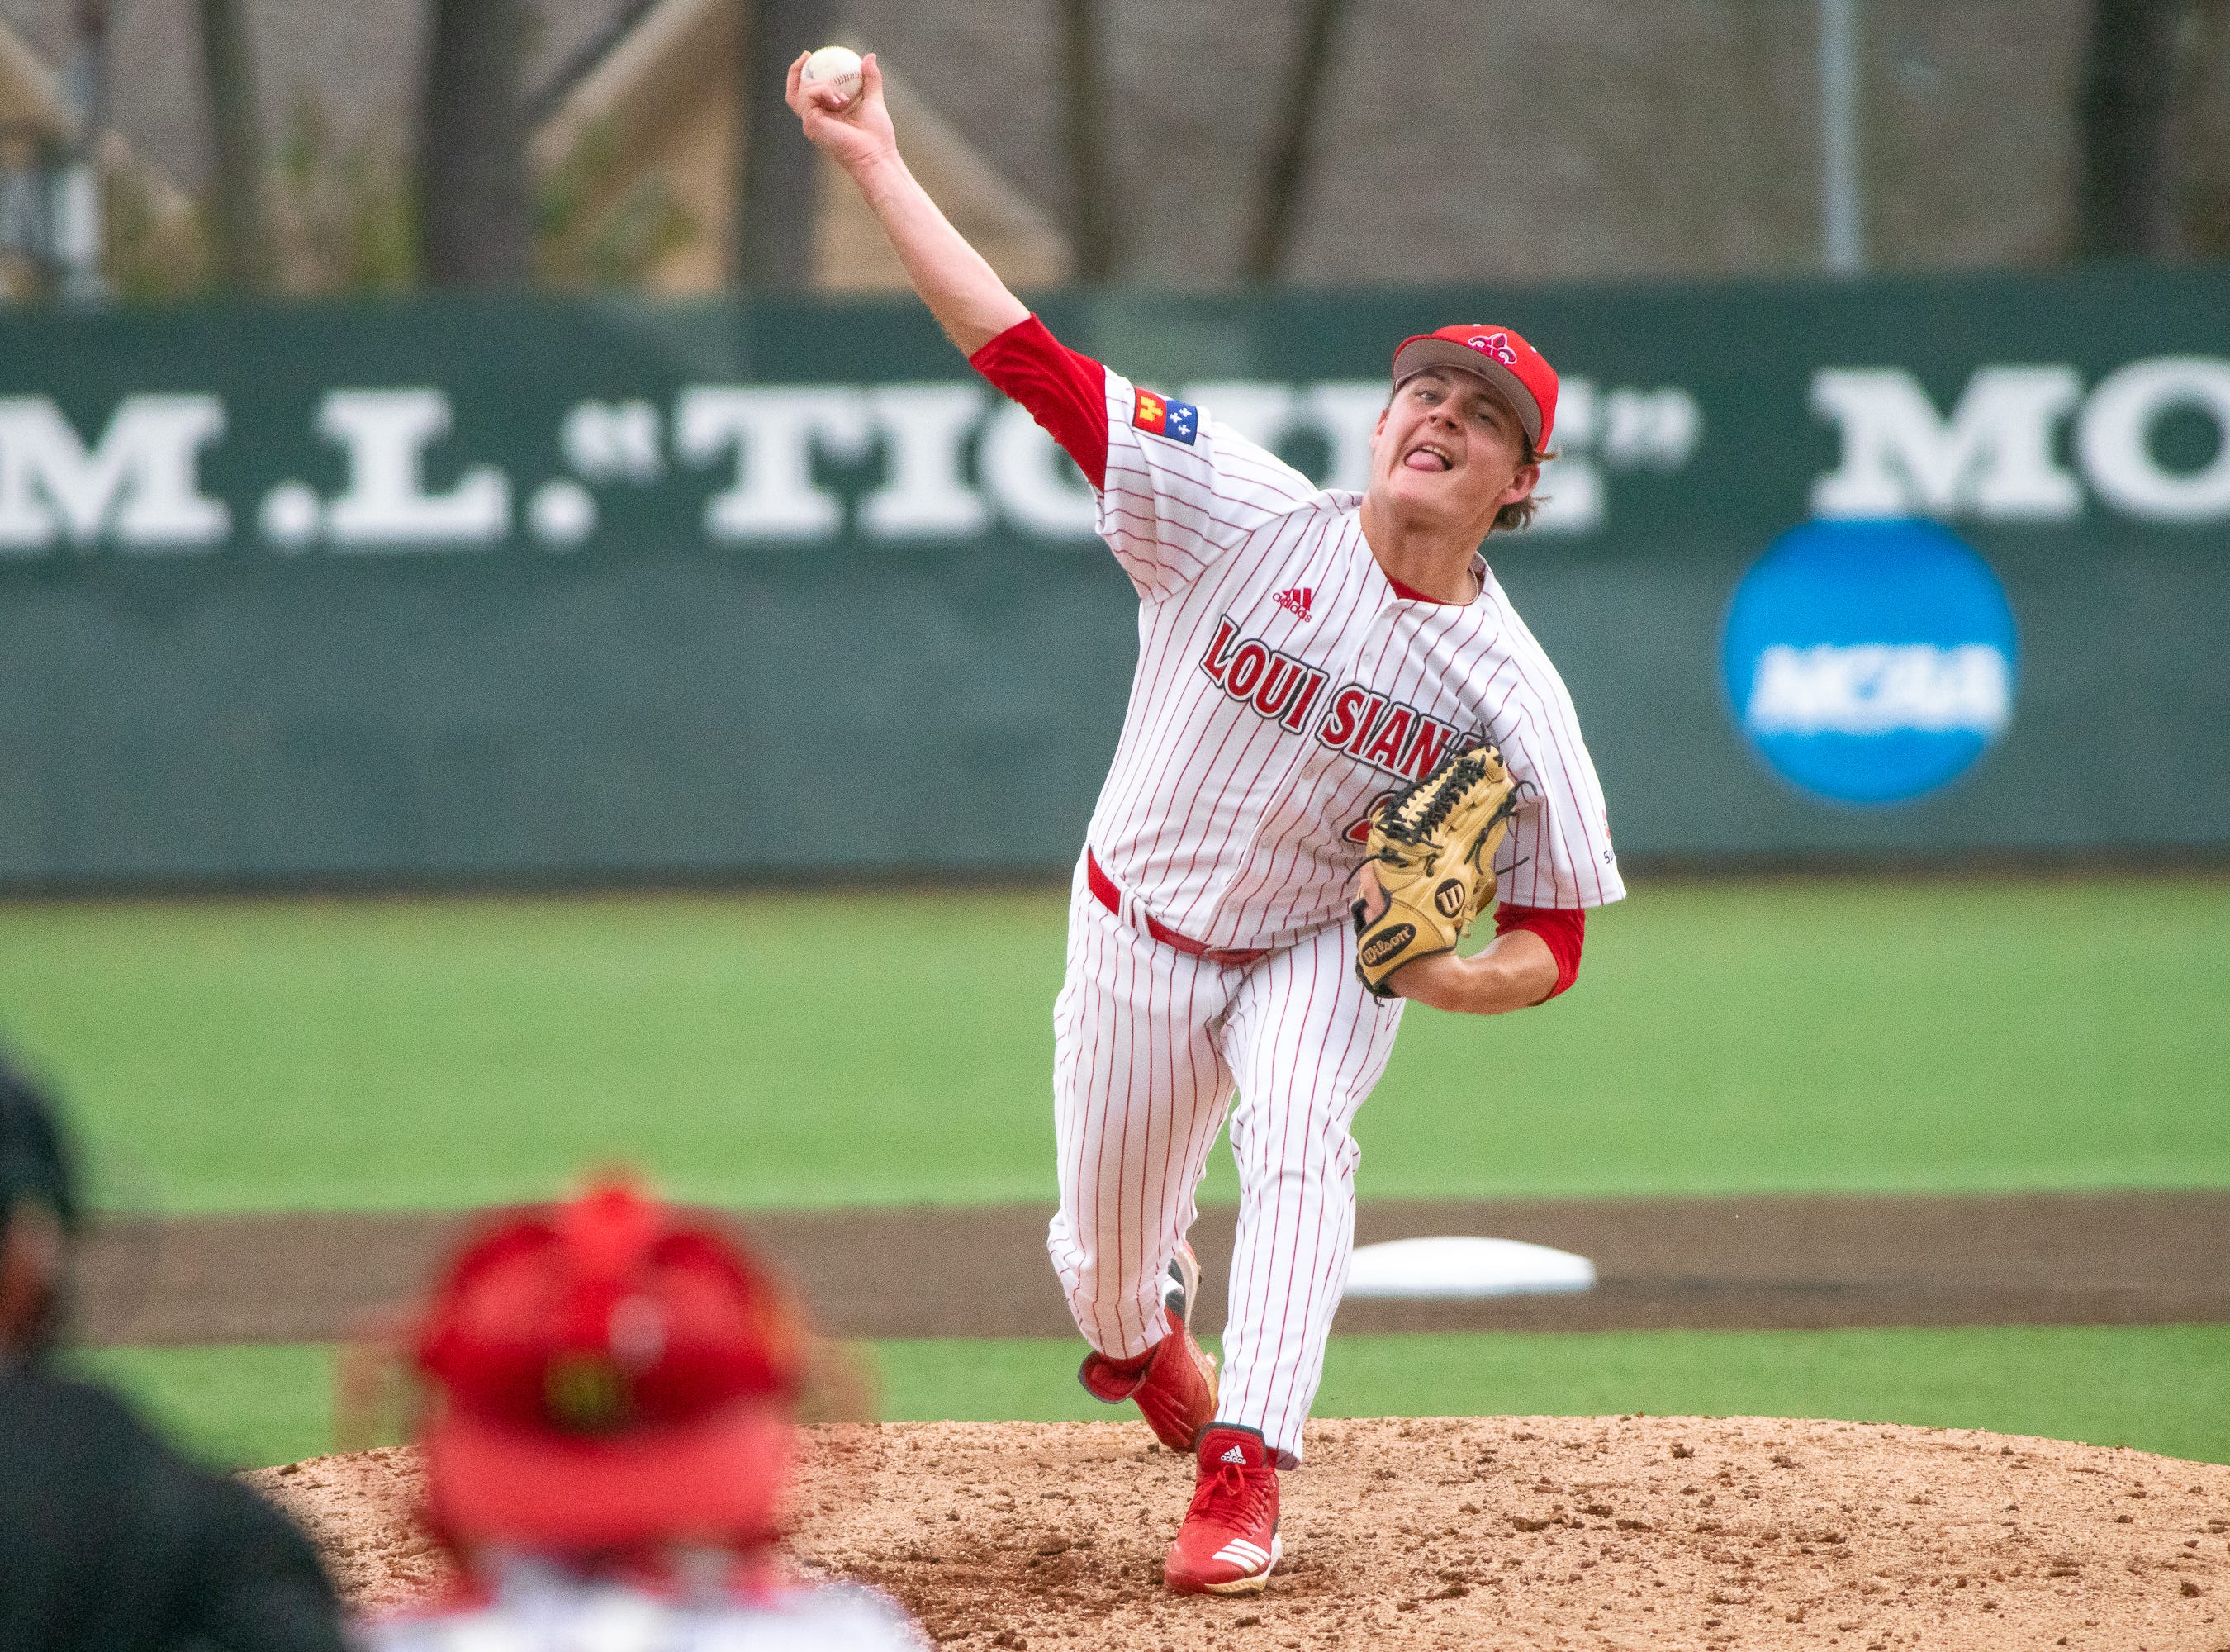 UL's Blake Schultz throws a pitch from the mound as the Ragin' Cajuns take on the Loyola Marymount Lions at M.L. Tigue Moore Field on March 10, 2019.